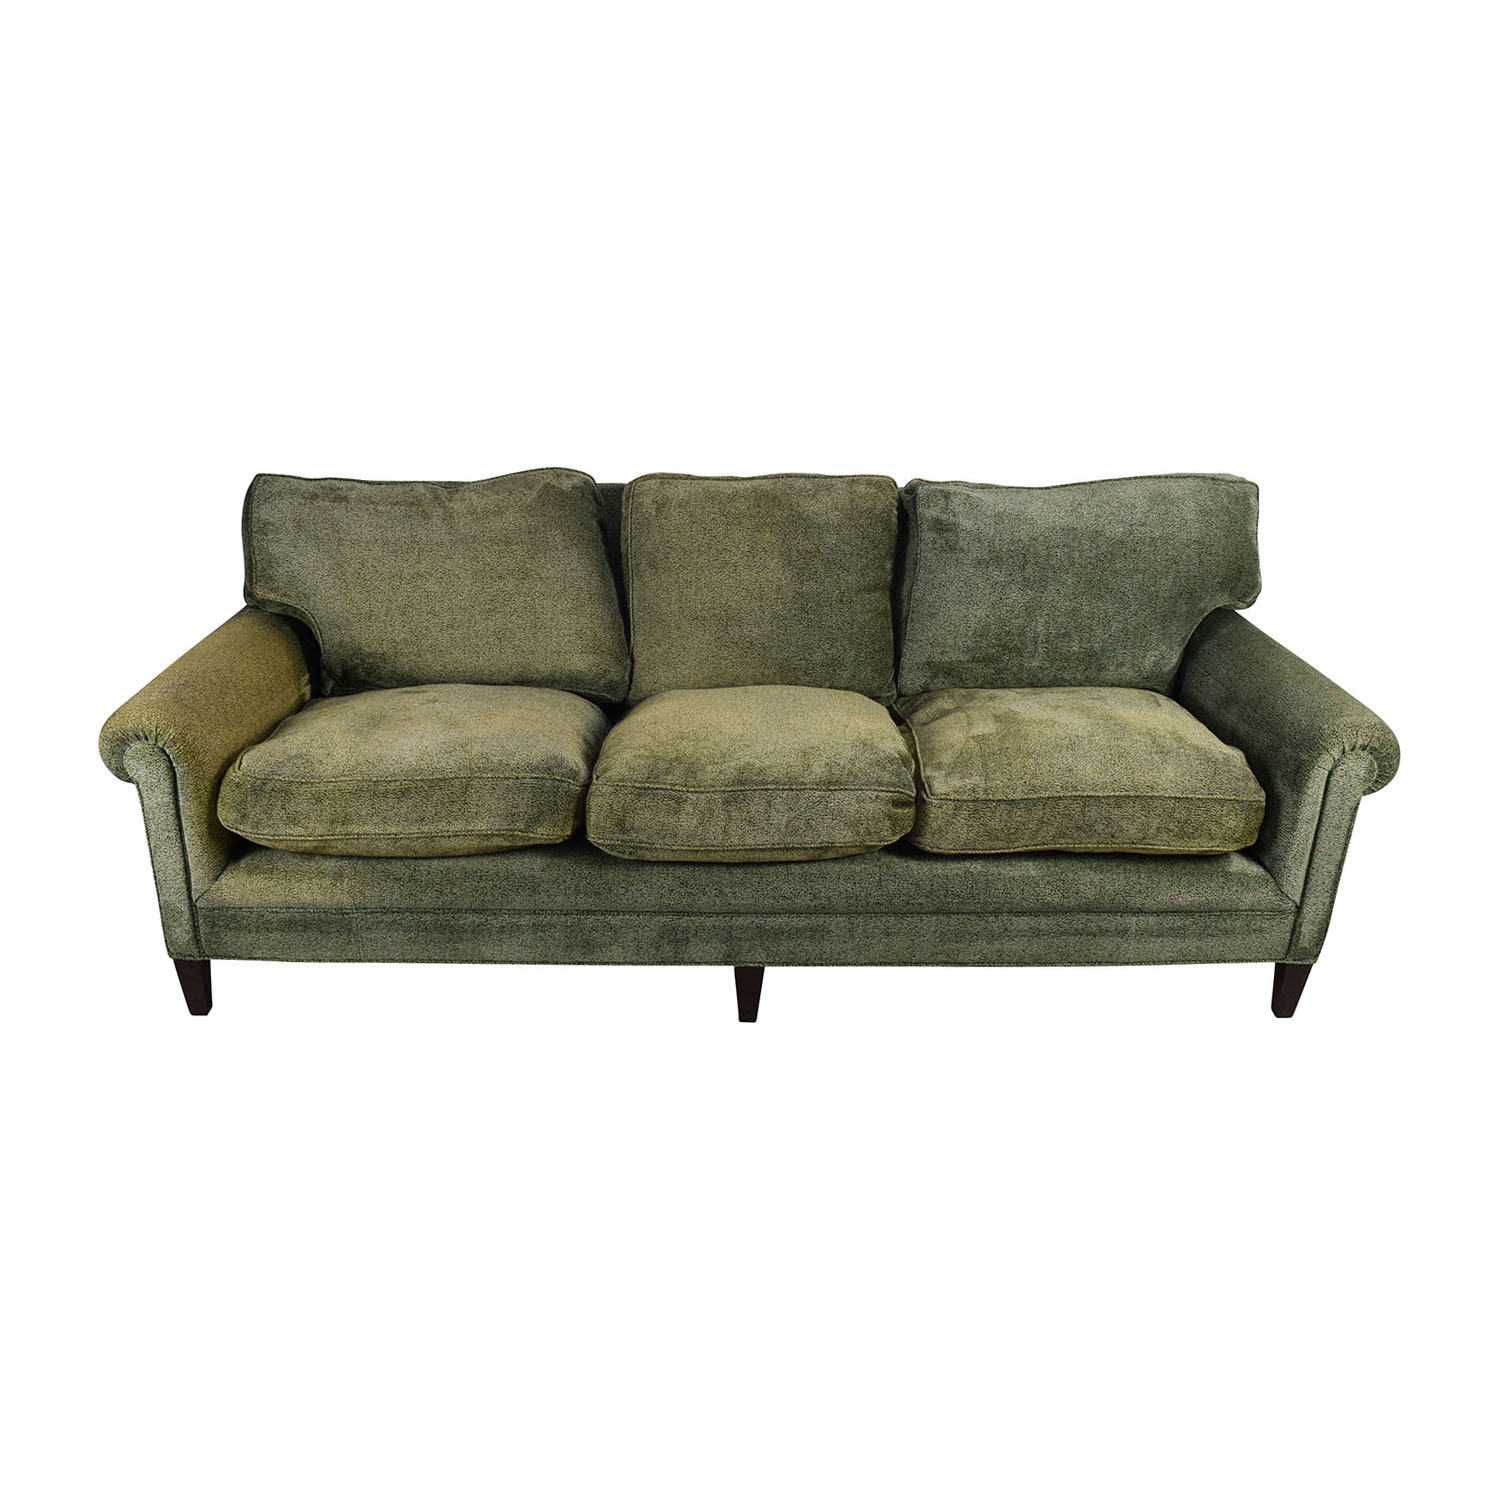 Pleasant 89 Off George Smith George Smith Classic English Style Sofa Sofas Inzonedesignstudio Interior Chair Design Inzonedesignstudiocom